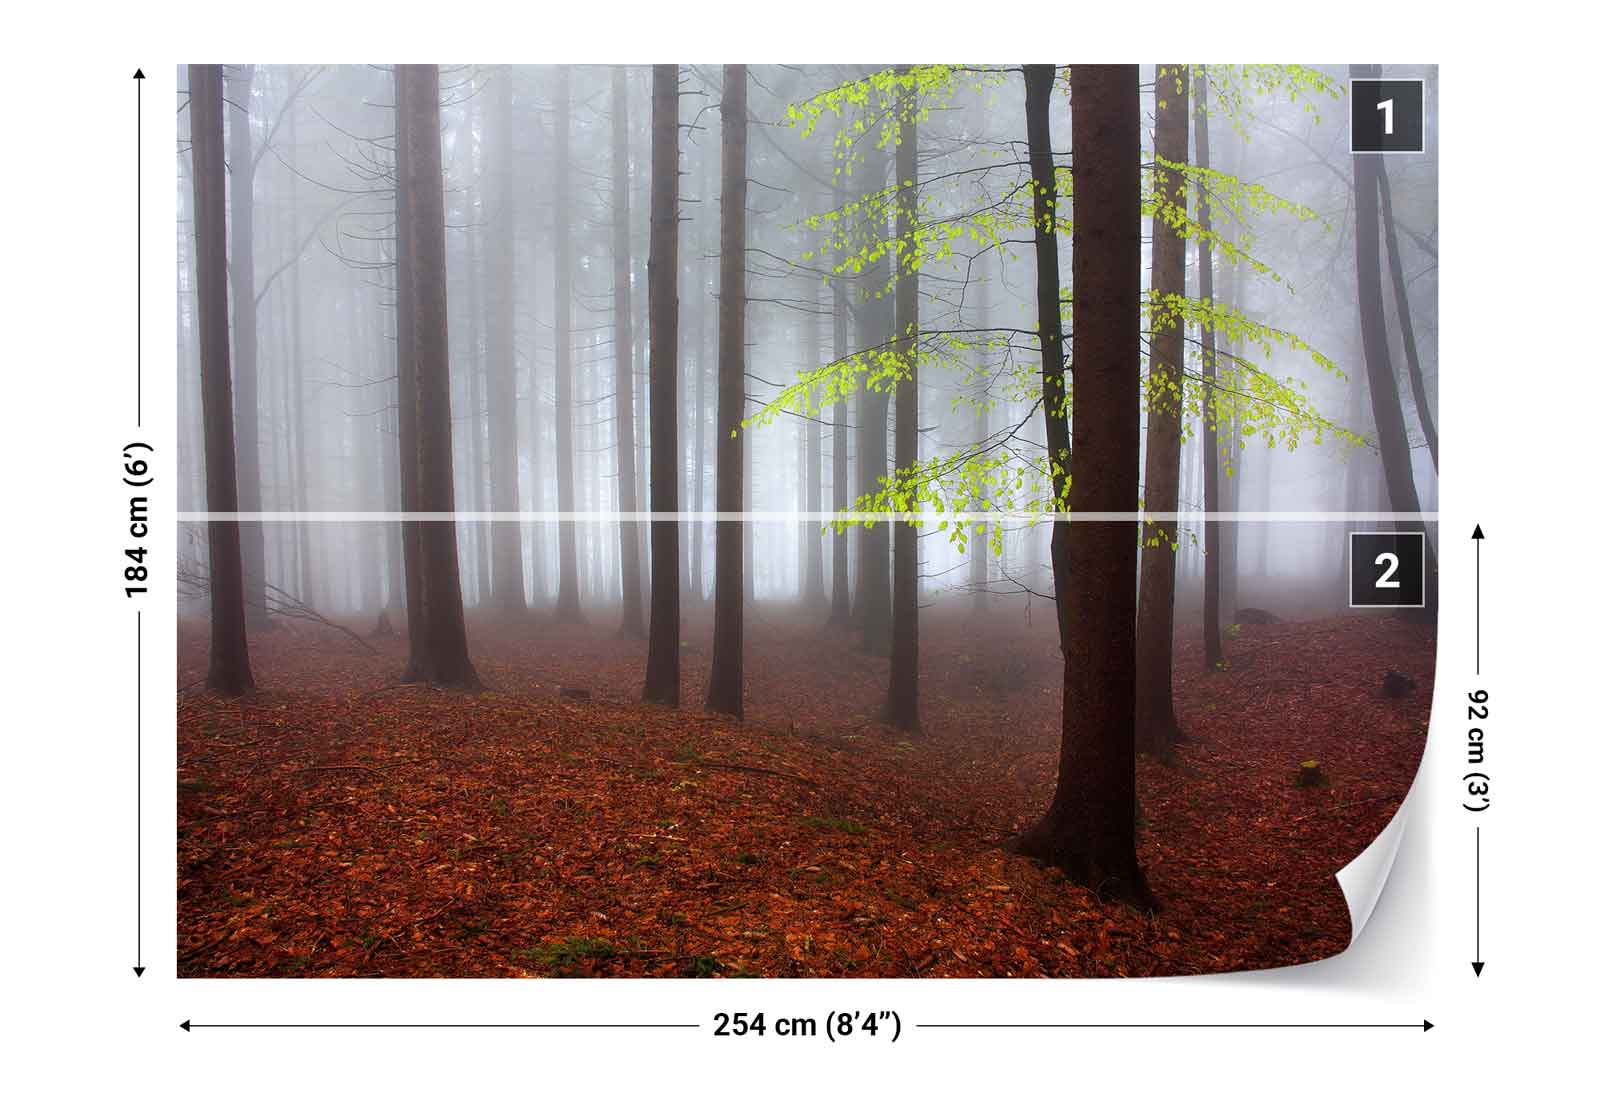 wald b ume herbst bl tter abdeckung nebel vlies fototapete 1x 134286 tapete ebay. Black Bedroom Furniture Sets. Home Design Ideas